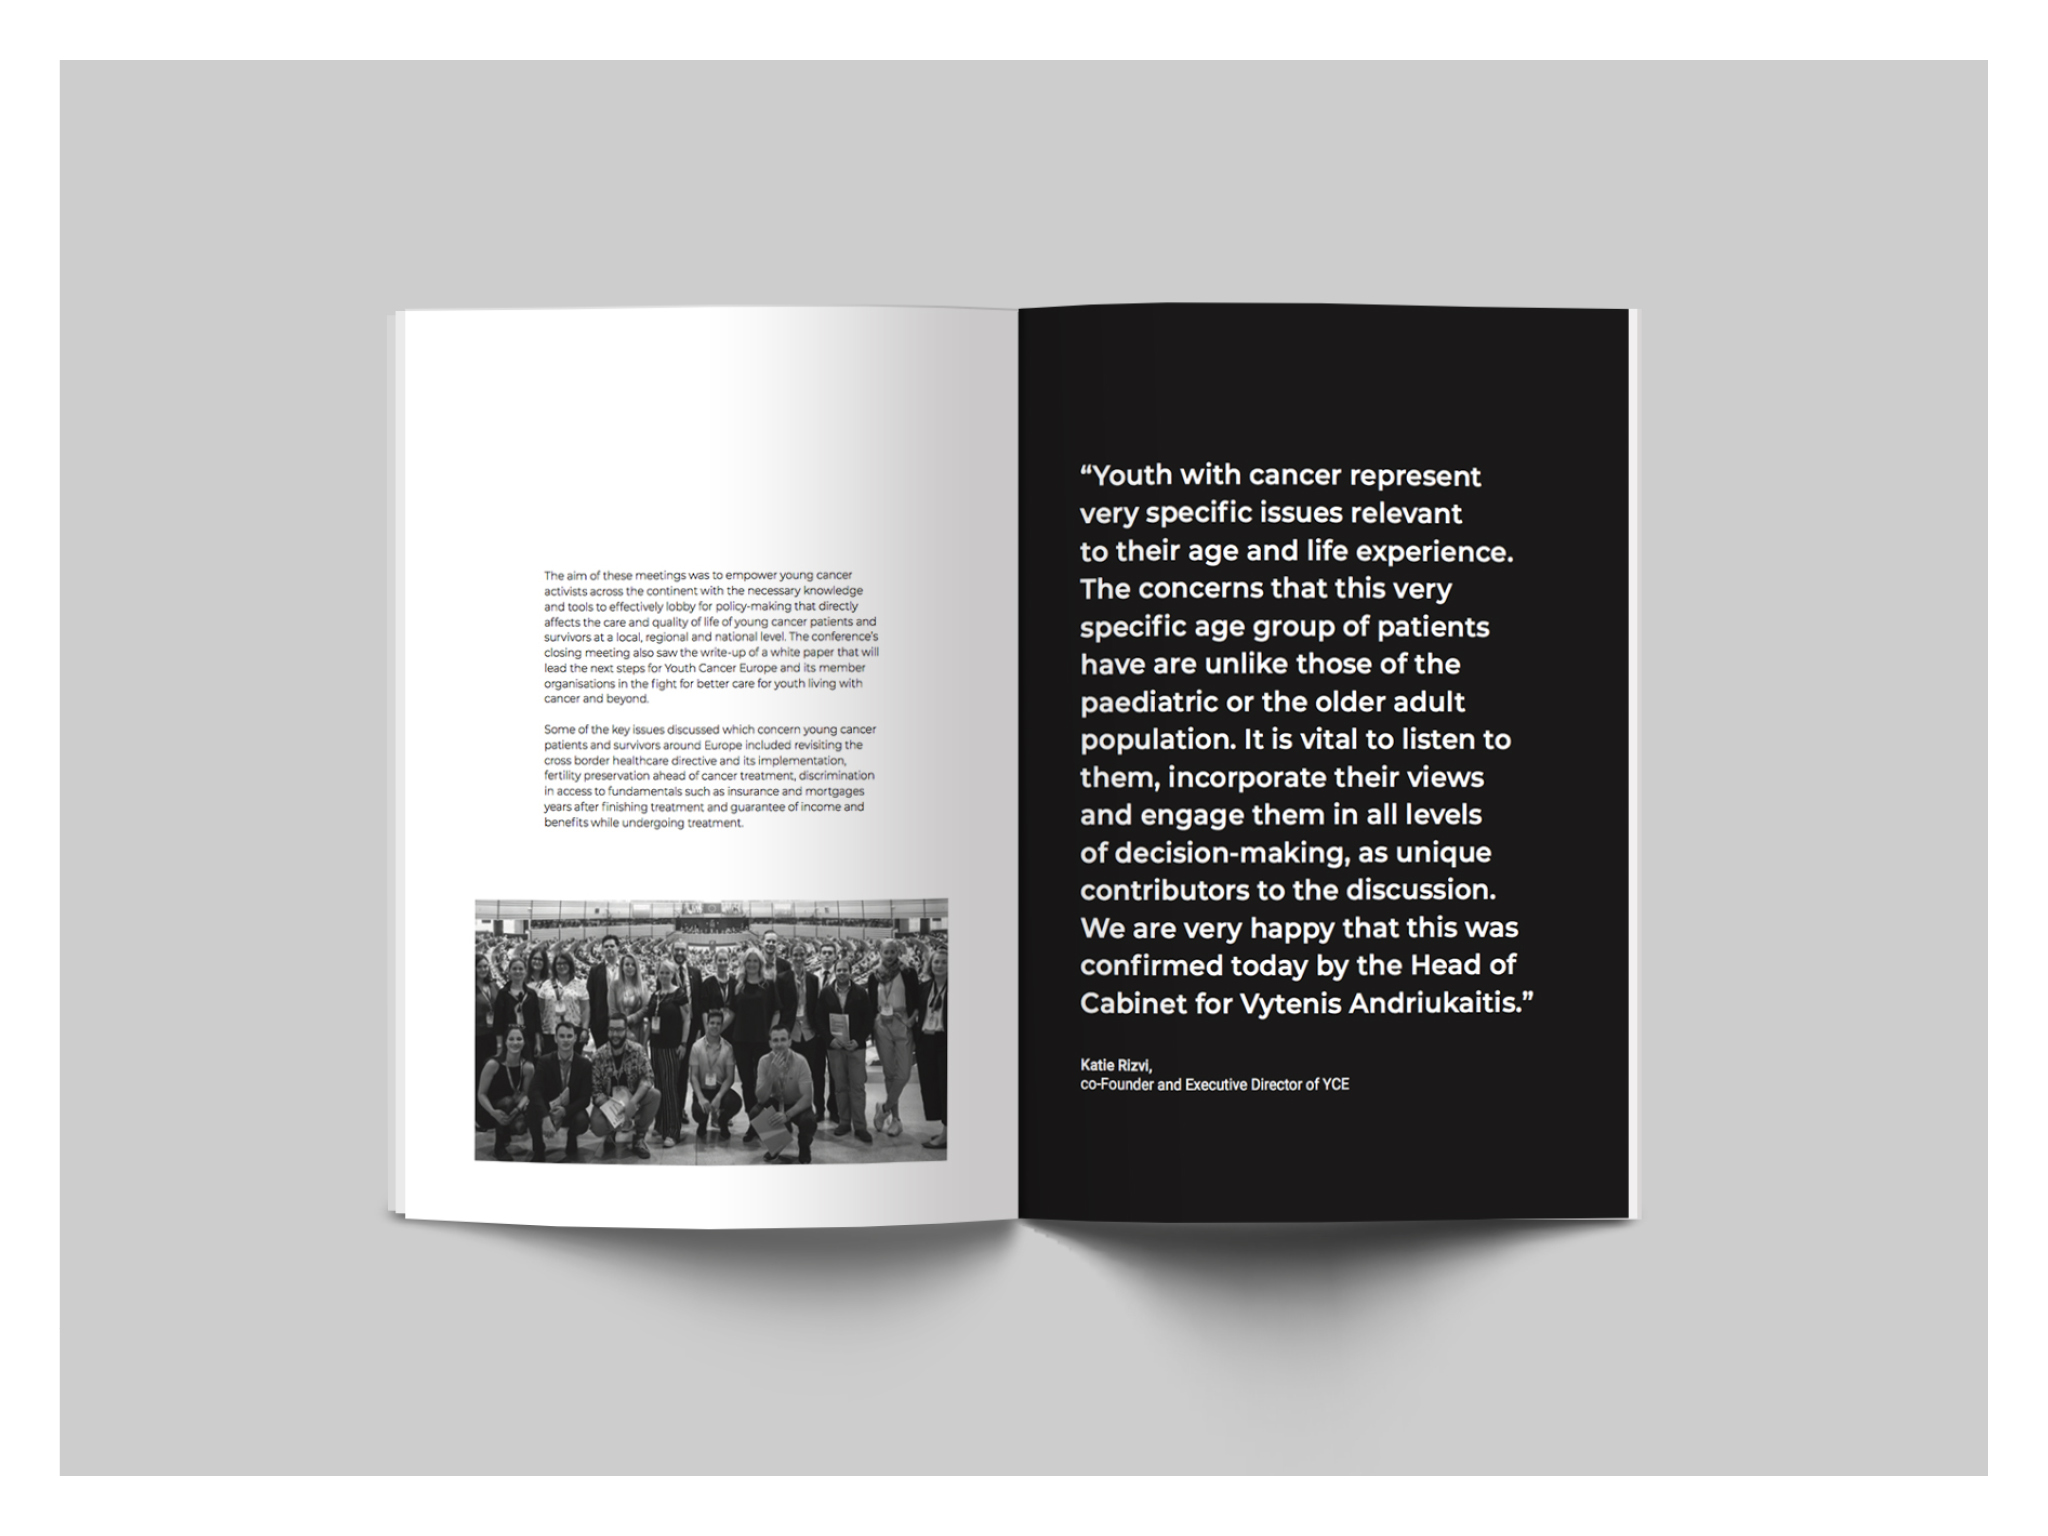 Annual report - Design for the 2018 Annual report for the Youth Cancer Europe